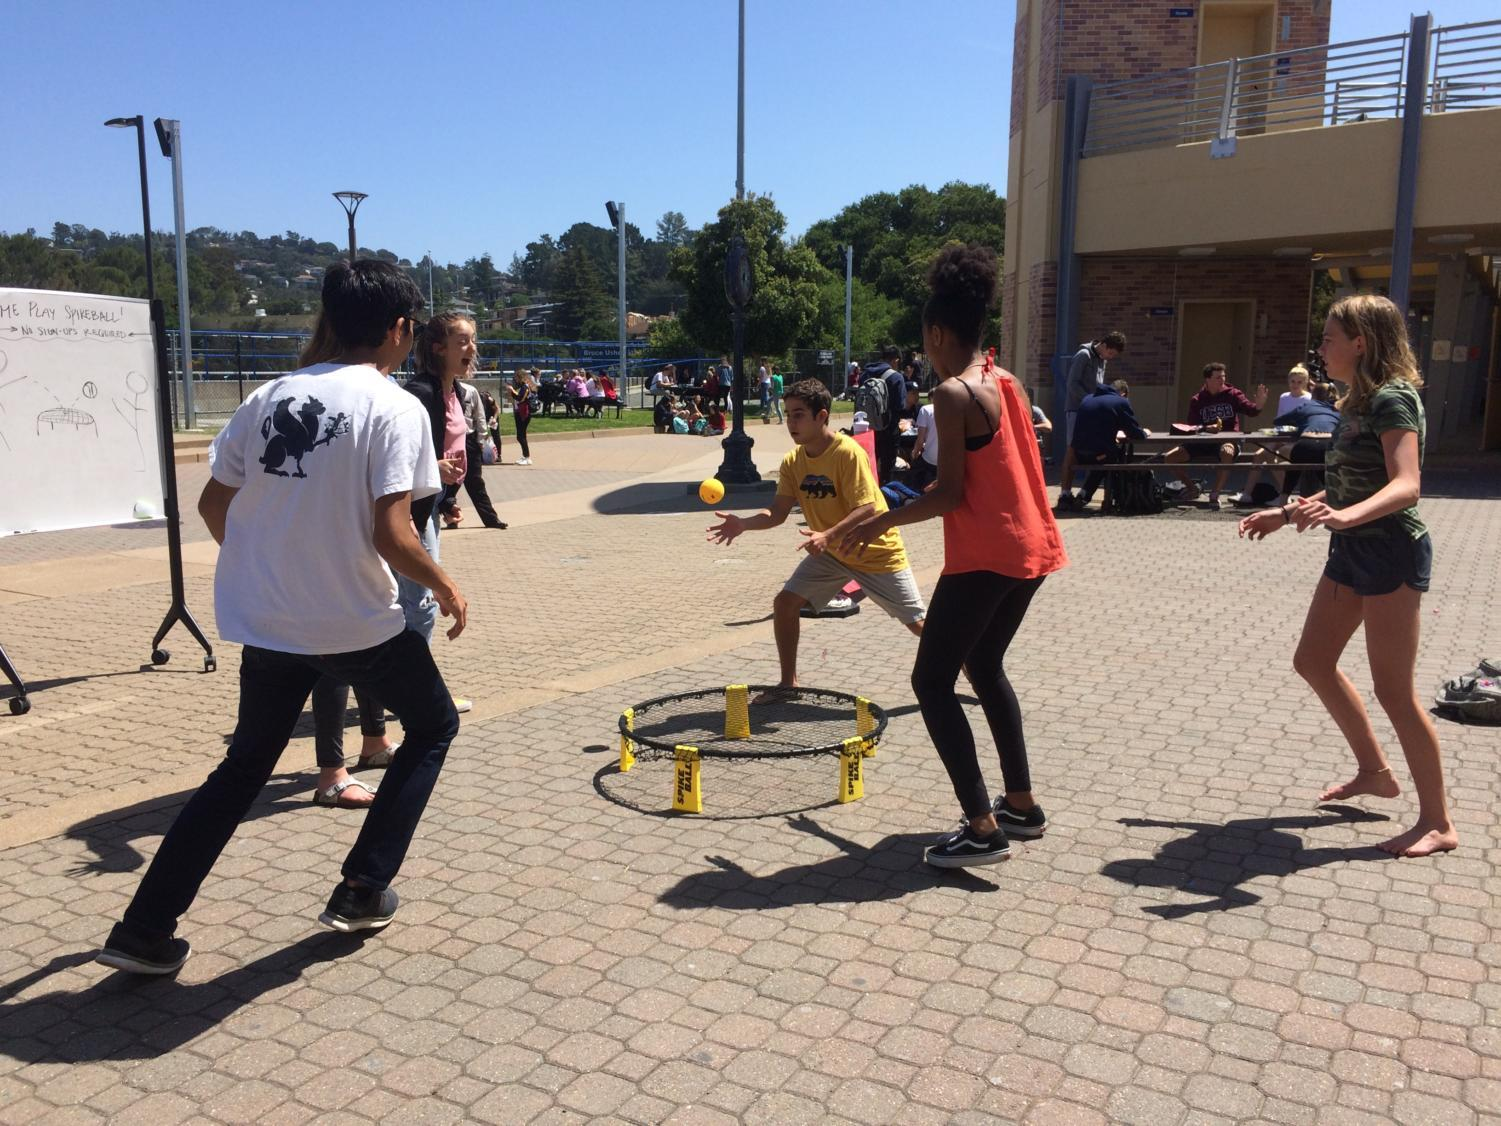 Students spontaneously  play spikeball in the quad, and are successful in having a cohesive game, despite just randomly deciding to play.